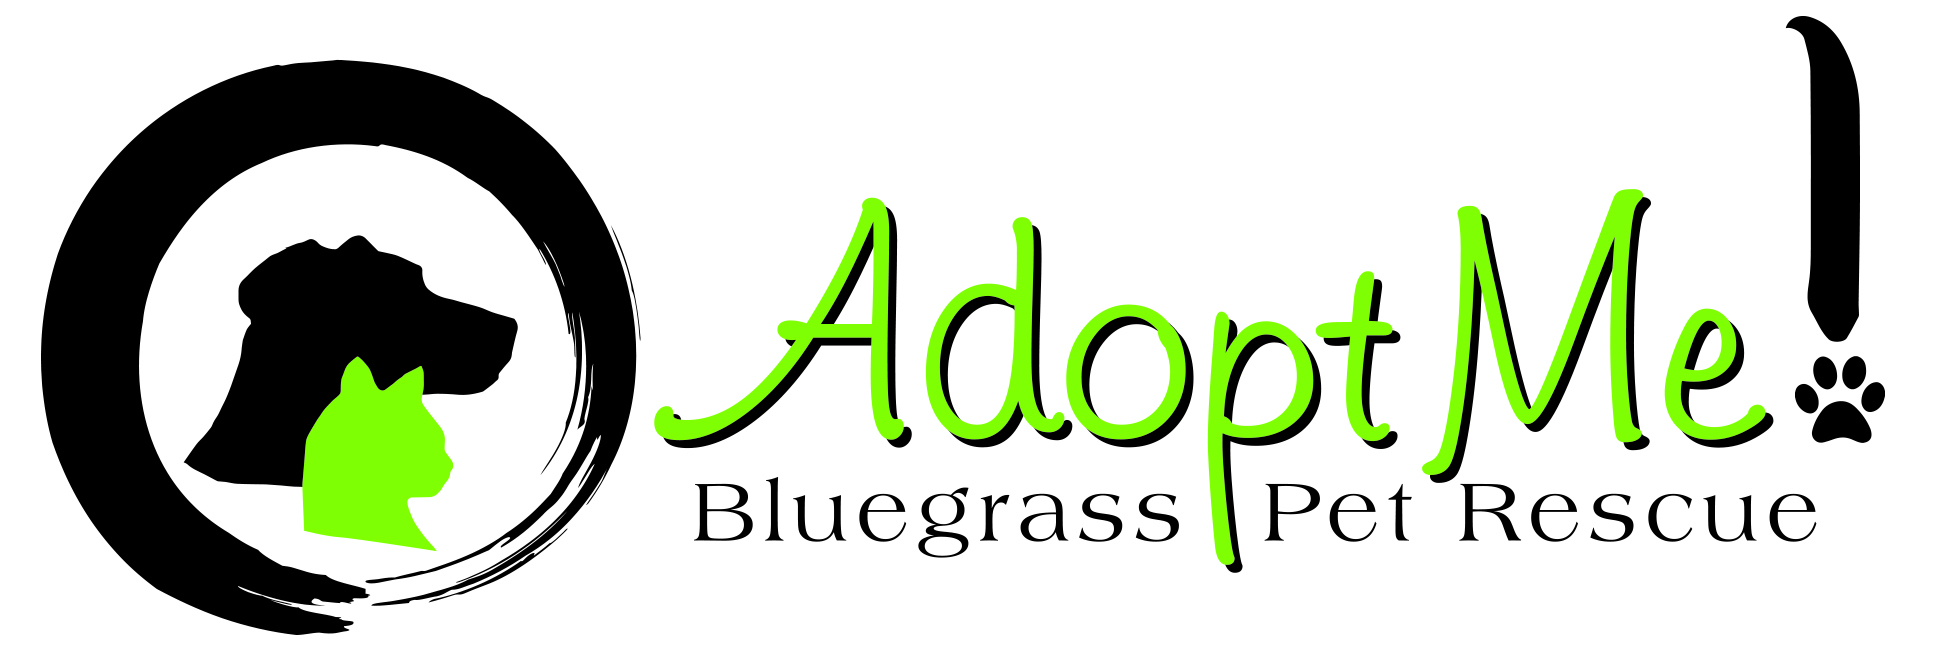 Louisville pet adoption